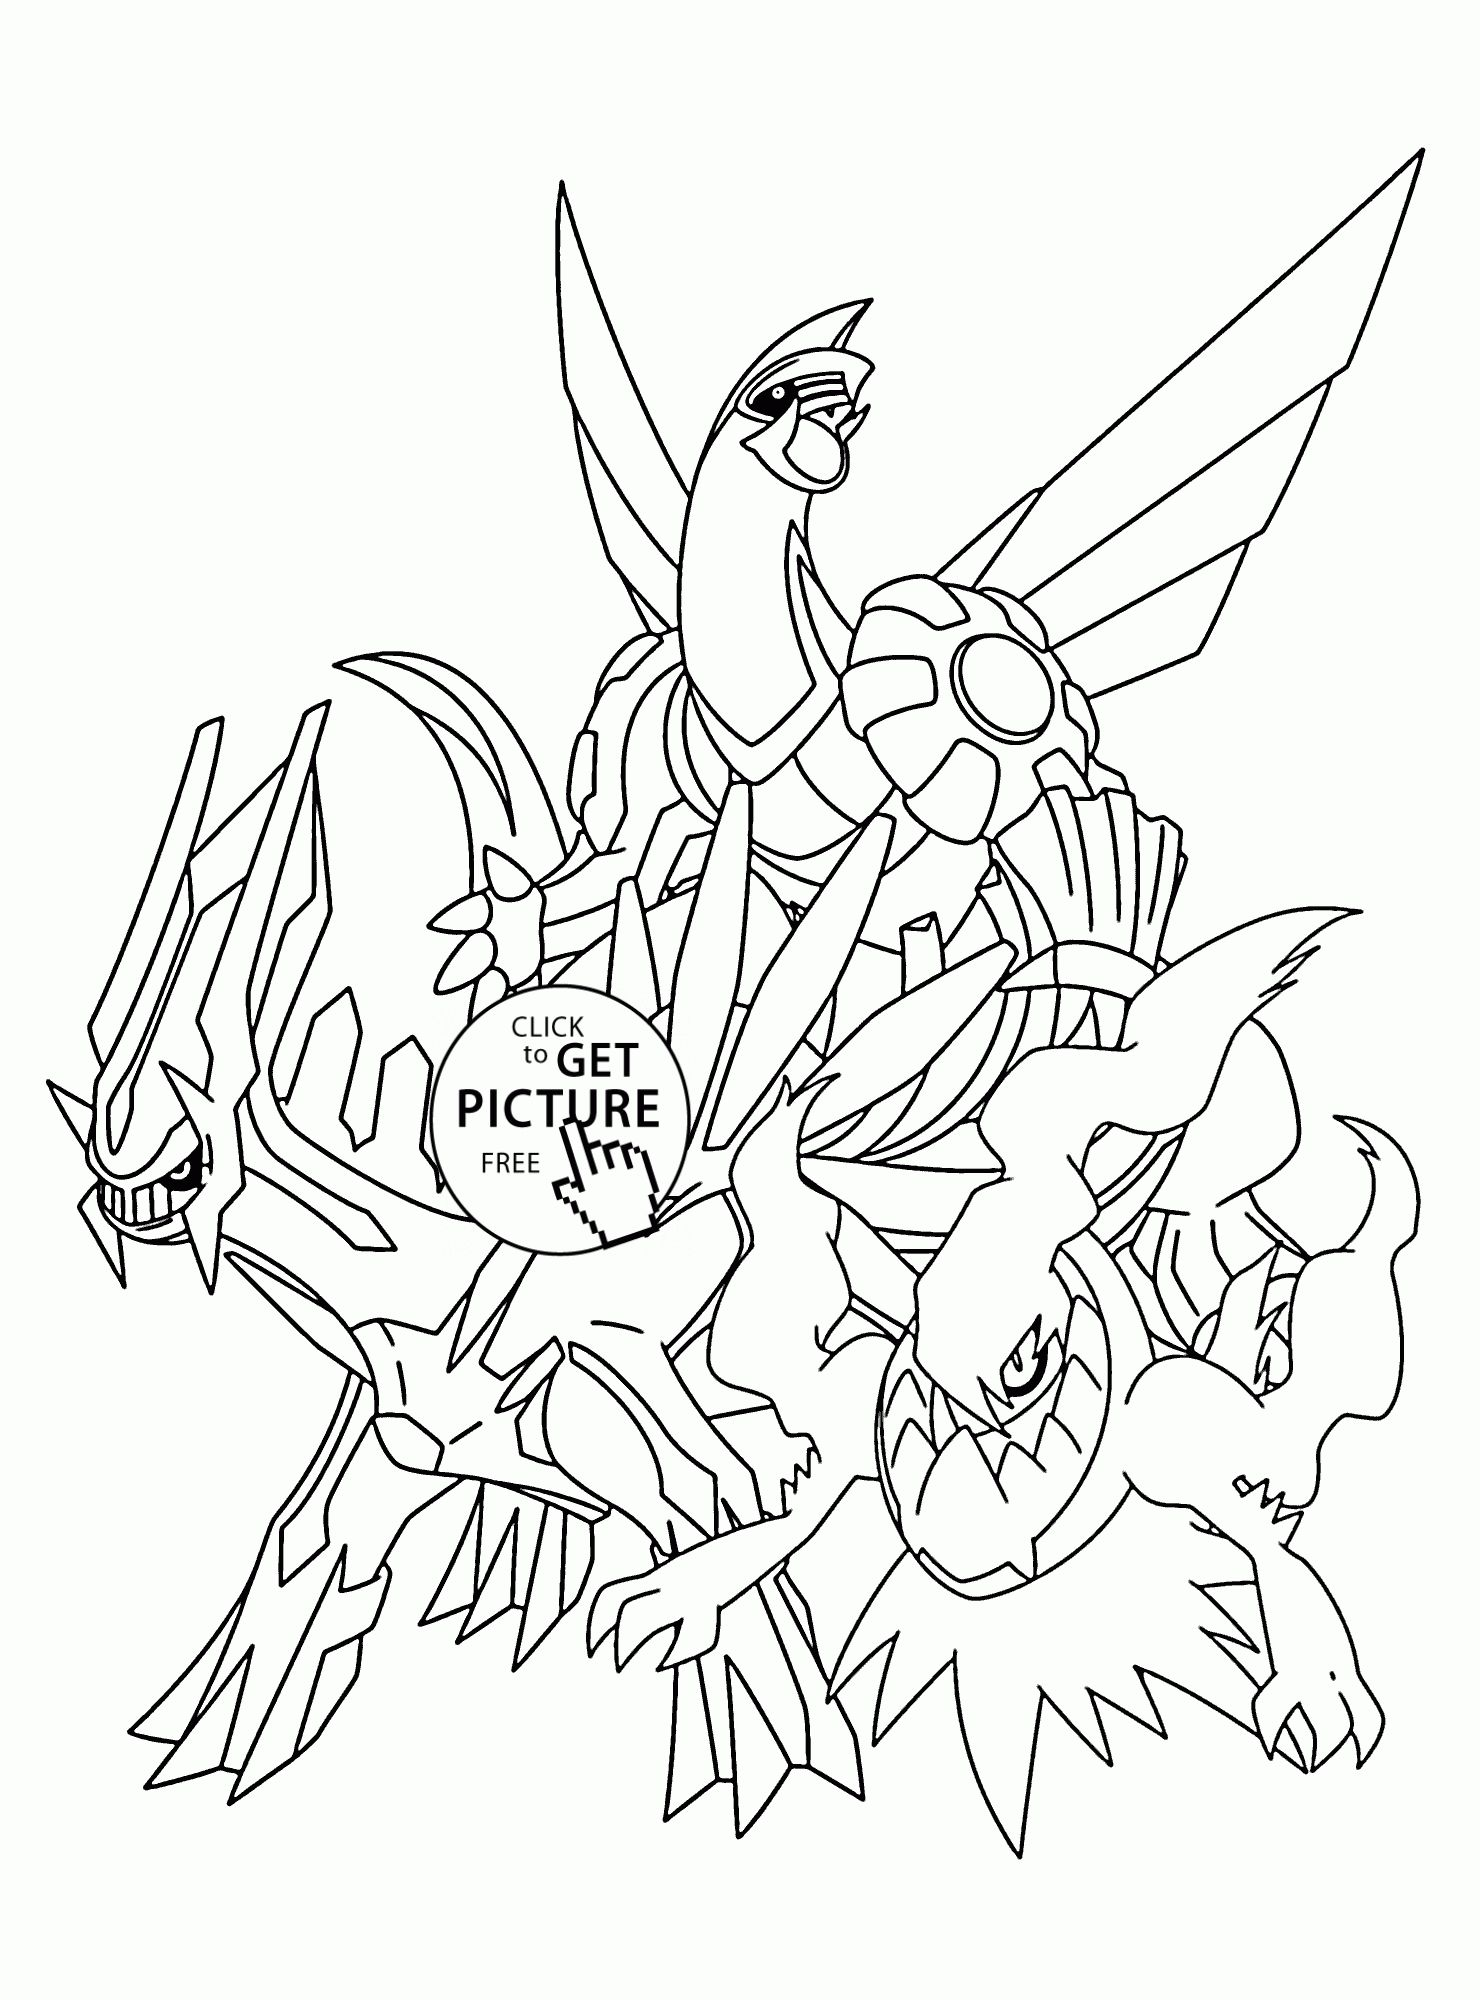 Pokemon Coloring Pages Of Legendaries Coloring Pages Allow Kids To Accompany Their Favorite Pokemon Coloring Pages Pokemon Coloring Sheets Pokemon Coloring